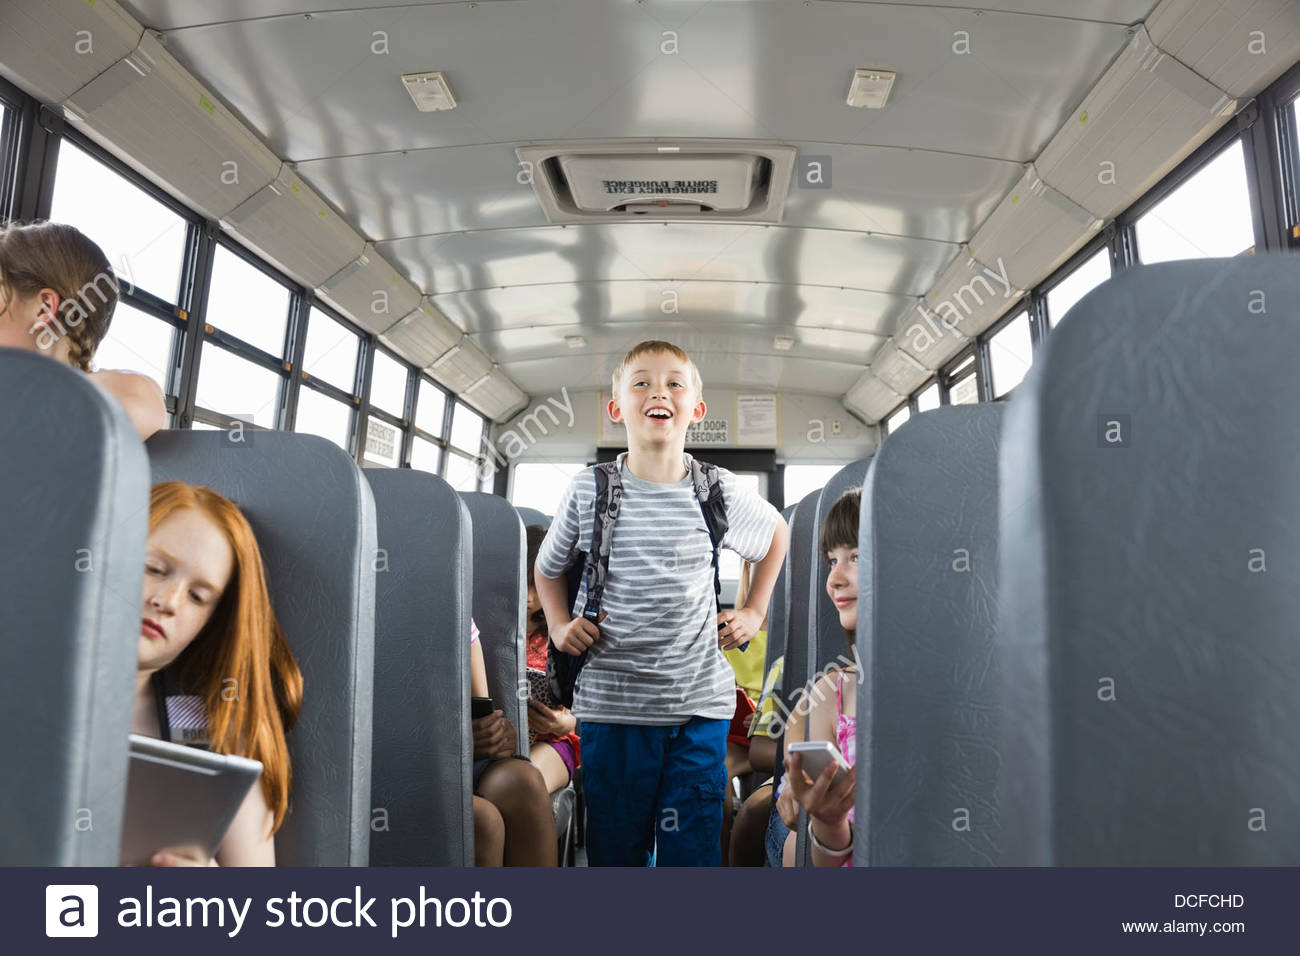 Cheerful schoolboy standing in aisle of bus - Stock Image